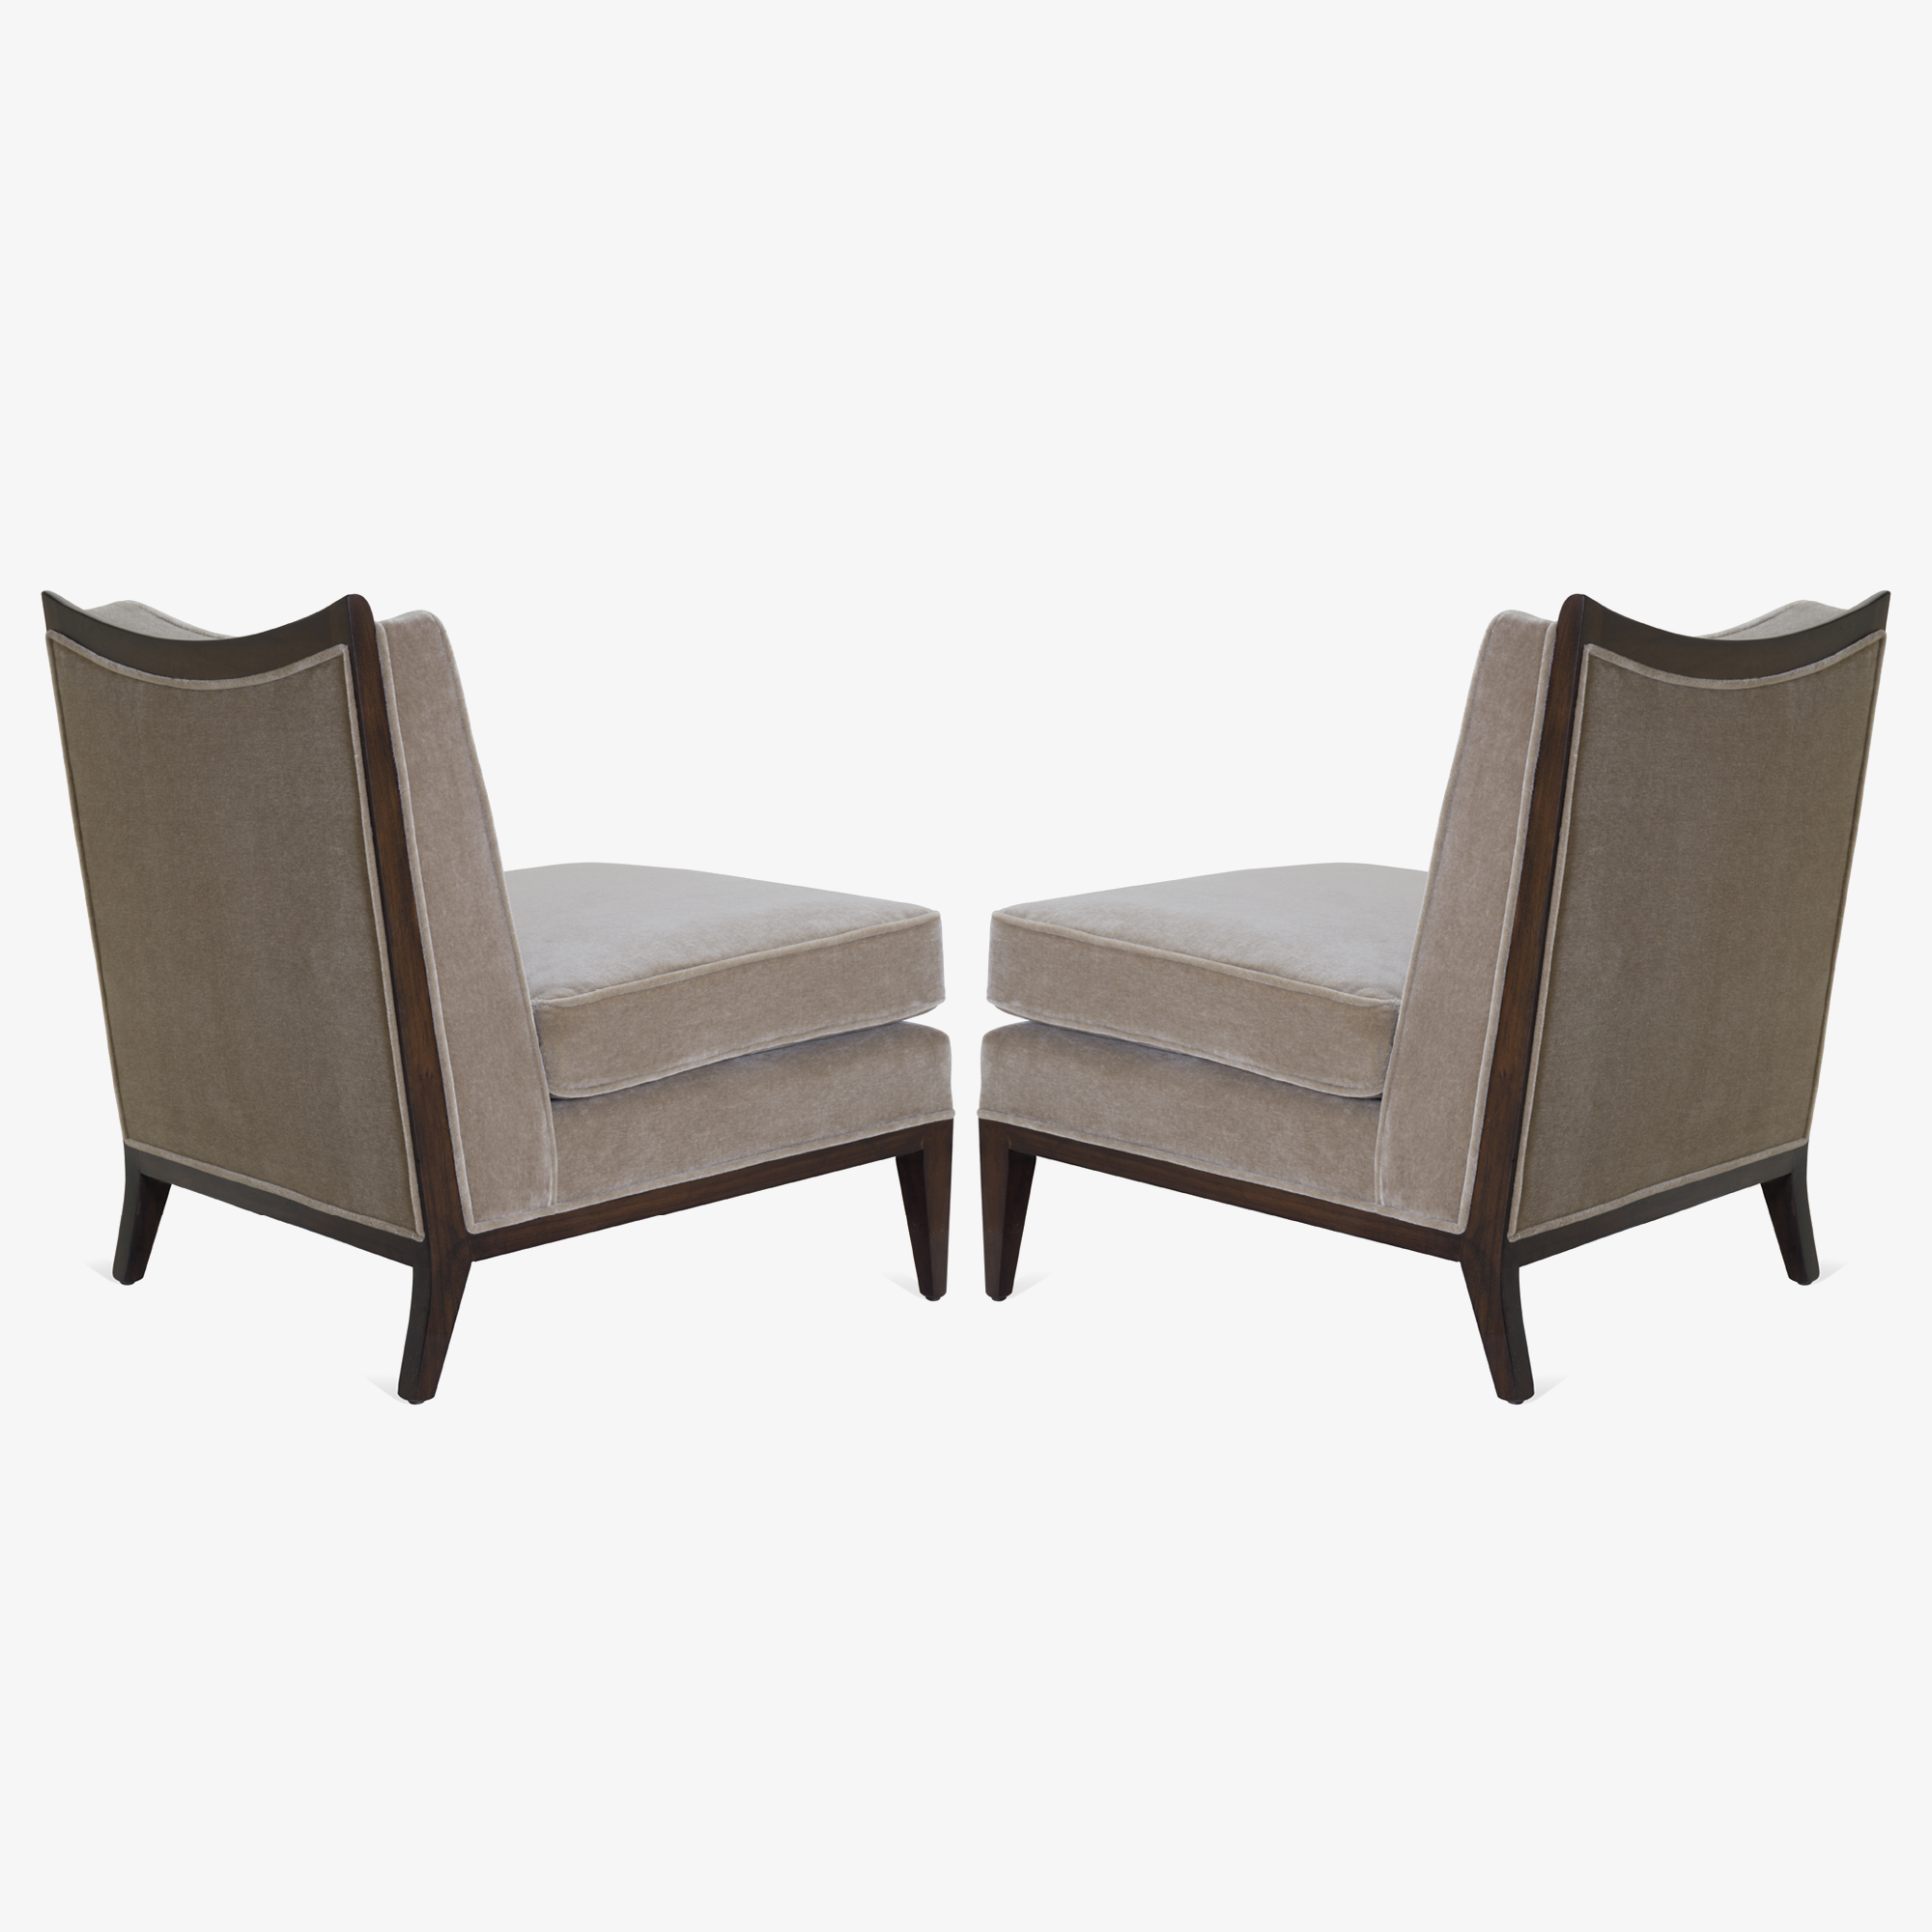 Slipper Chairs in Mohair & Walnut, Pair3.png